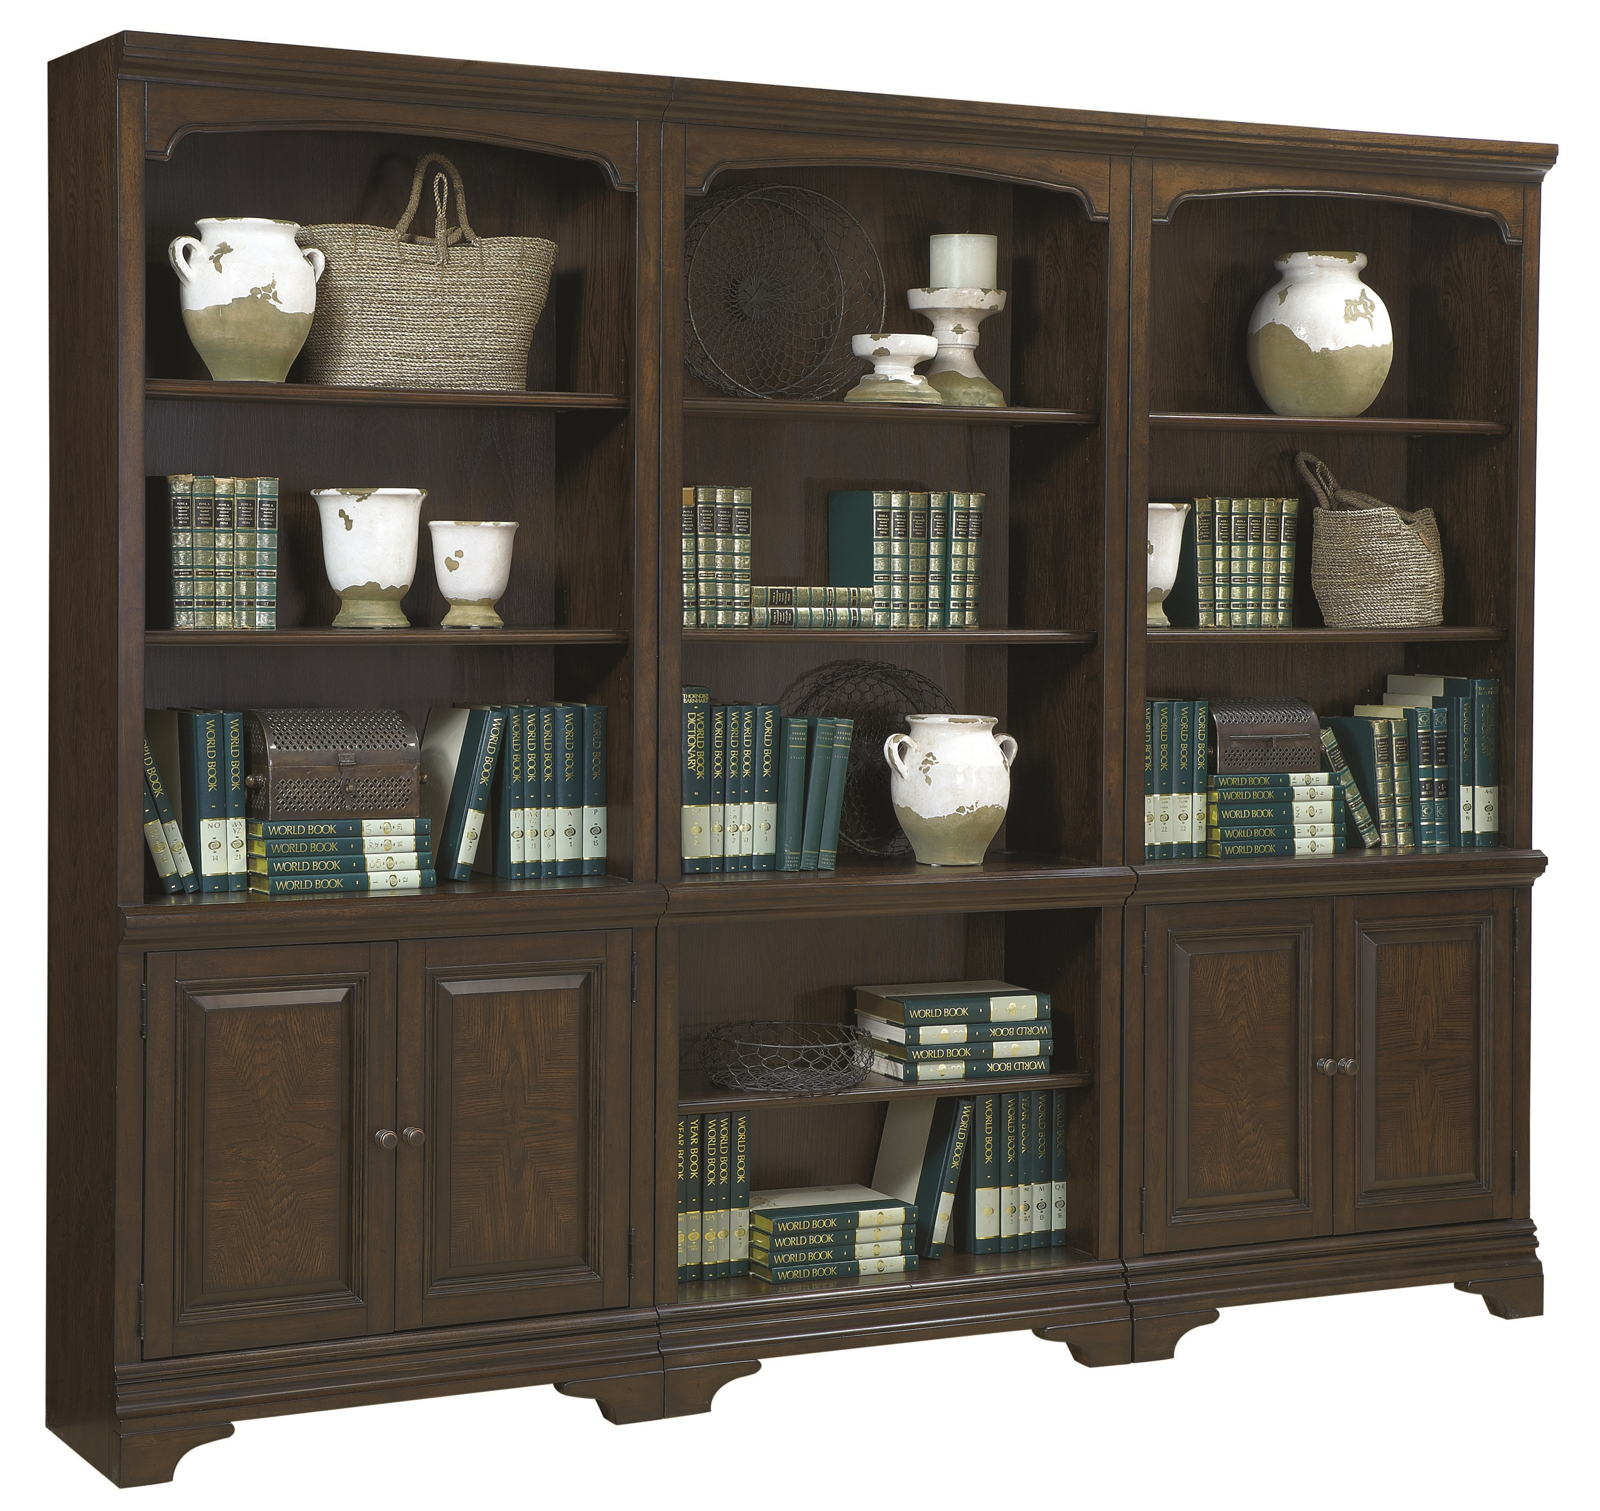 Aspenhome Essex Bookcase Wall In Molasses Brown APPX